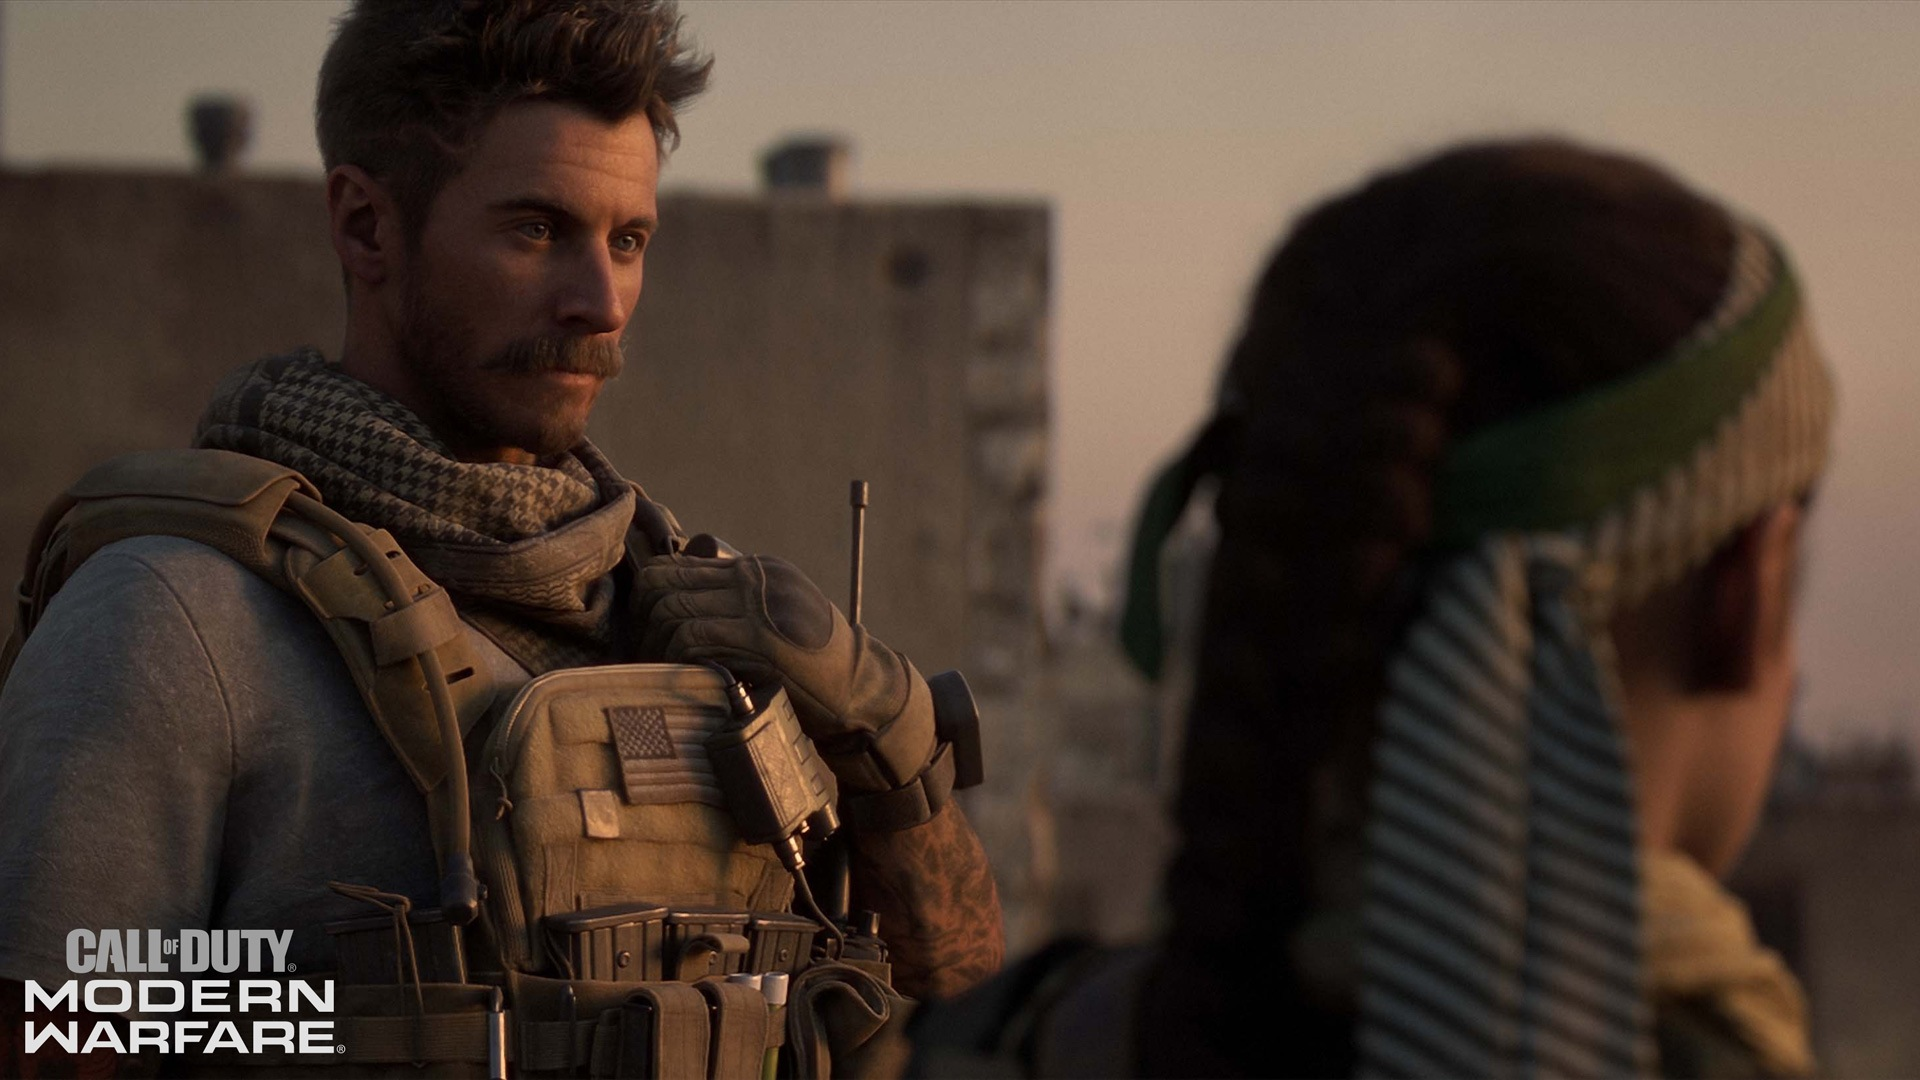 Modern Warfare Campaign Details and PS4 Exclusive Survival Mode